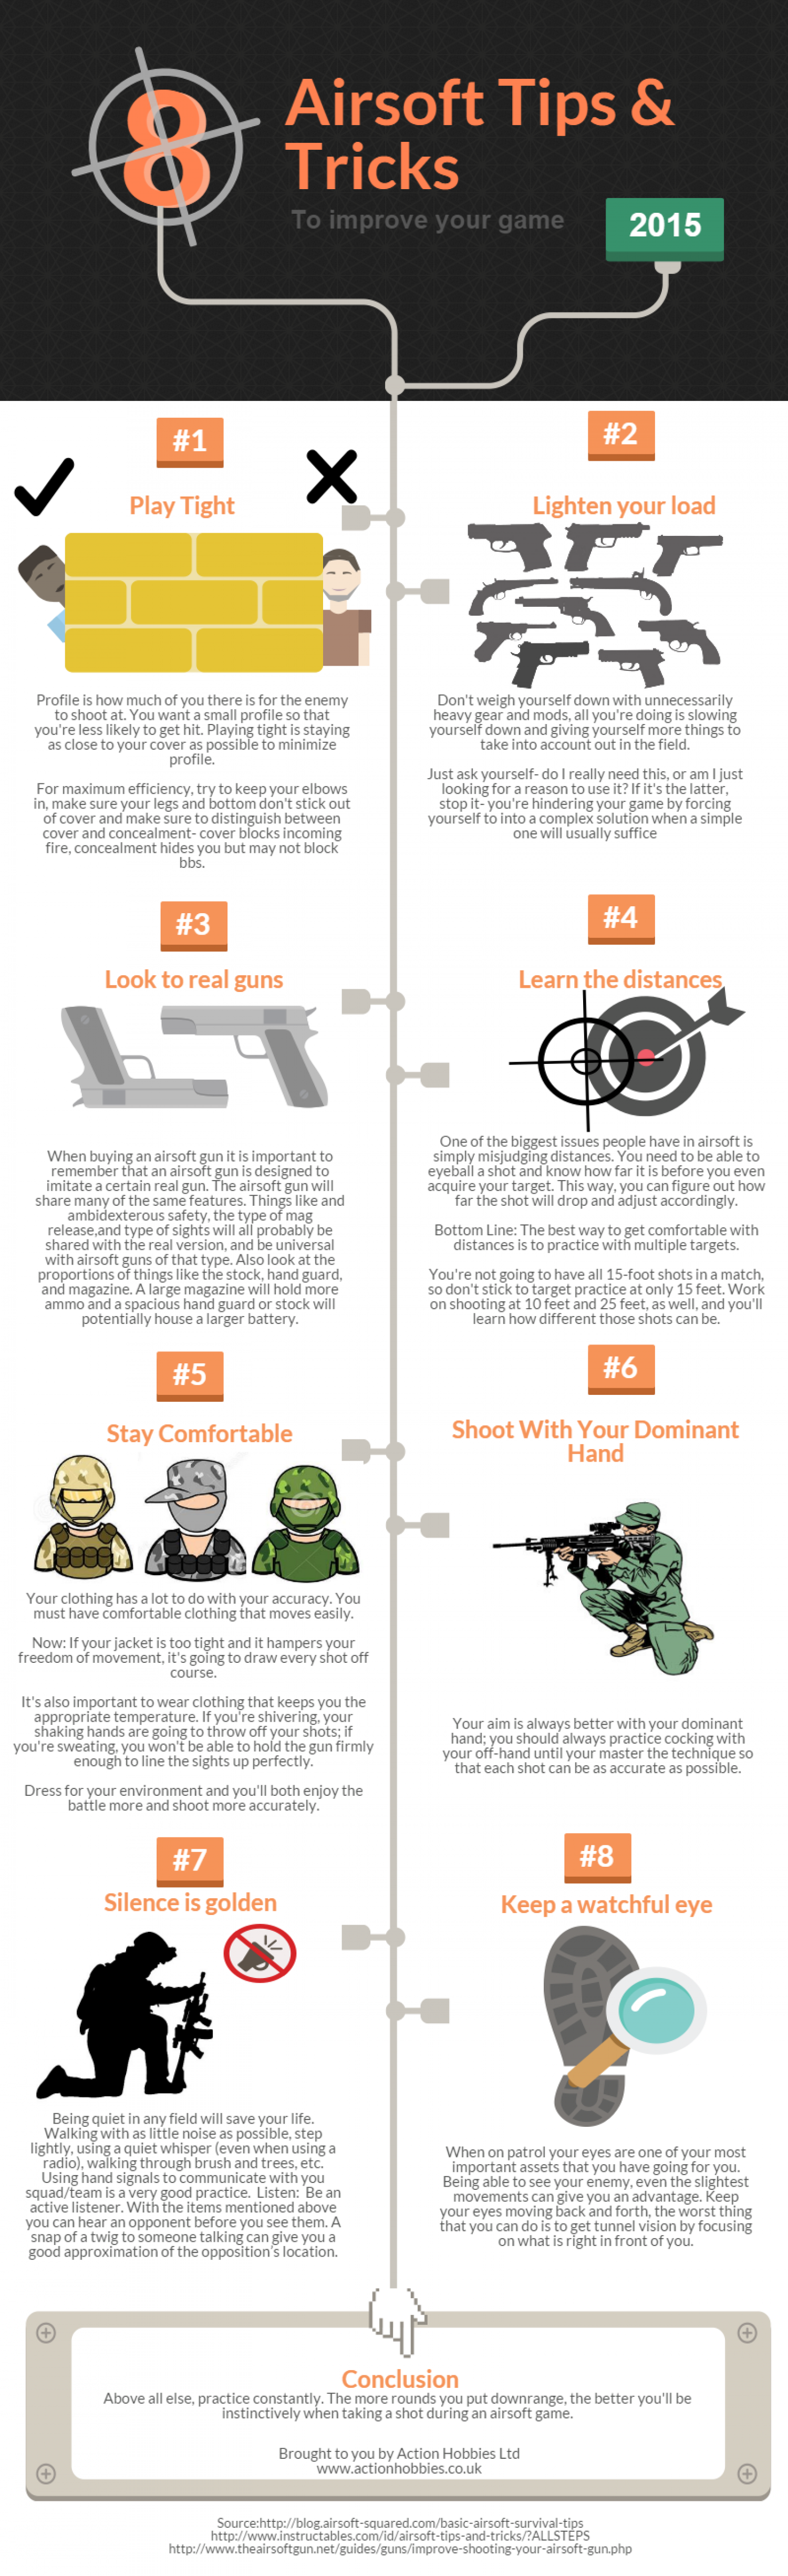 Airsoft Tips & Tricks Infographic